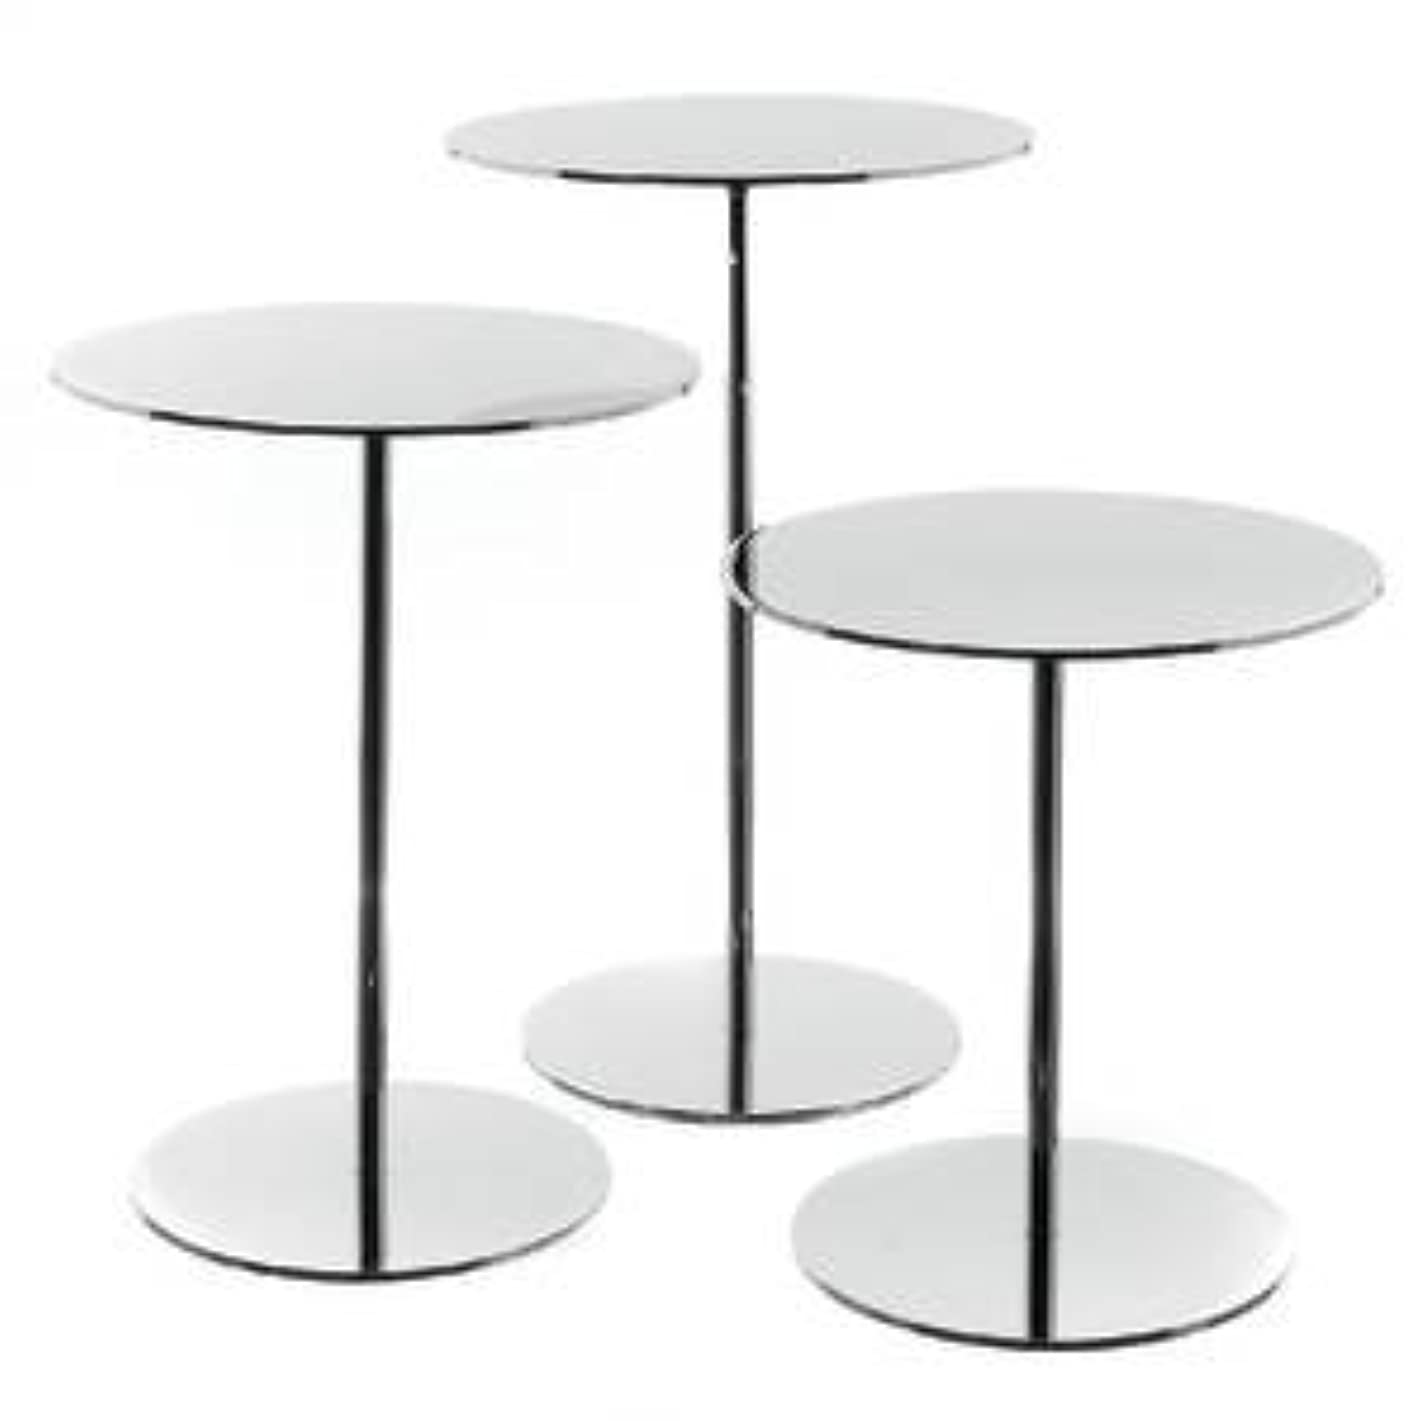 Chrome Round Display Risers Set of 3